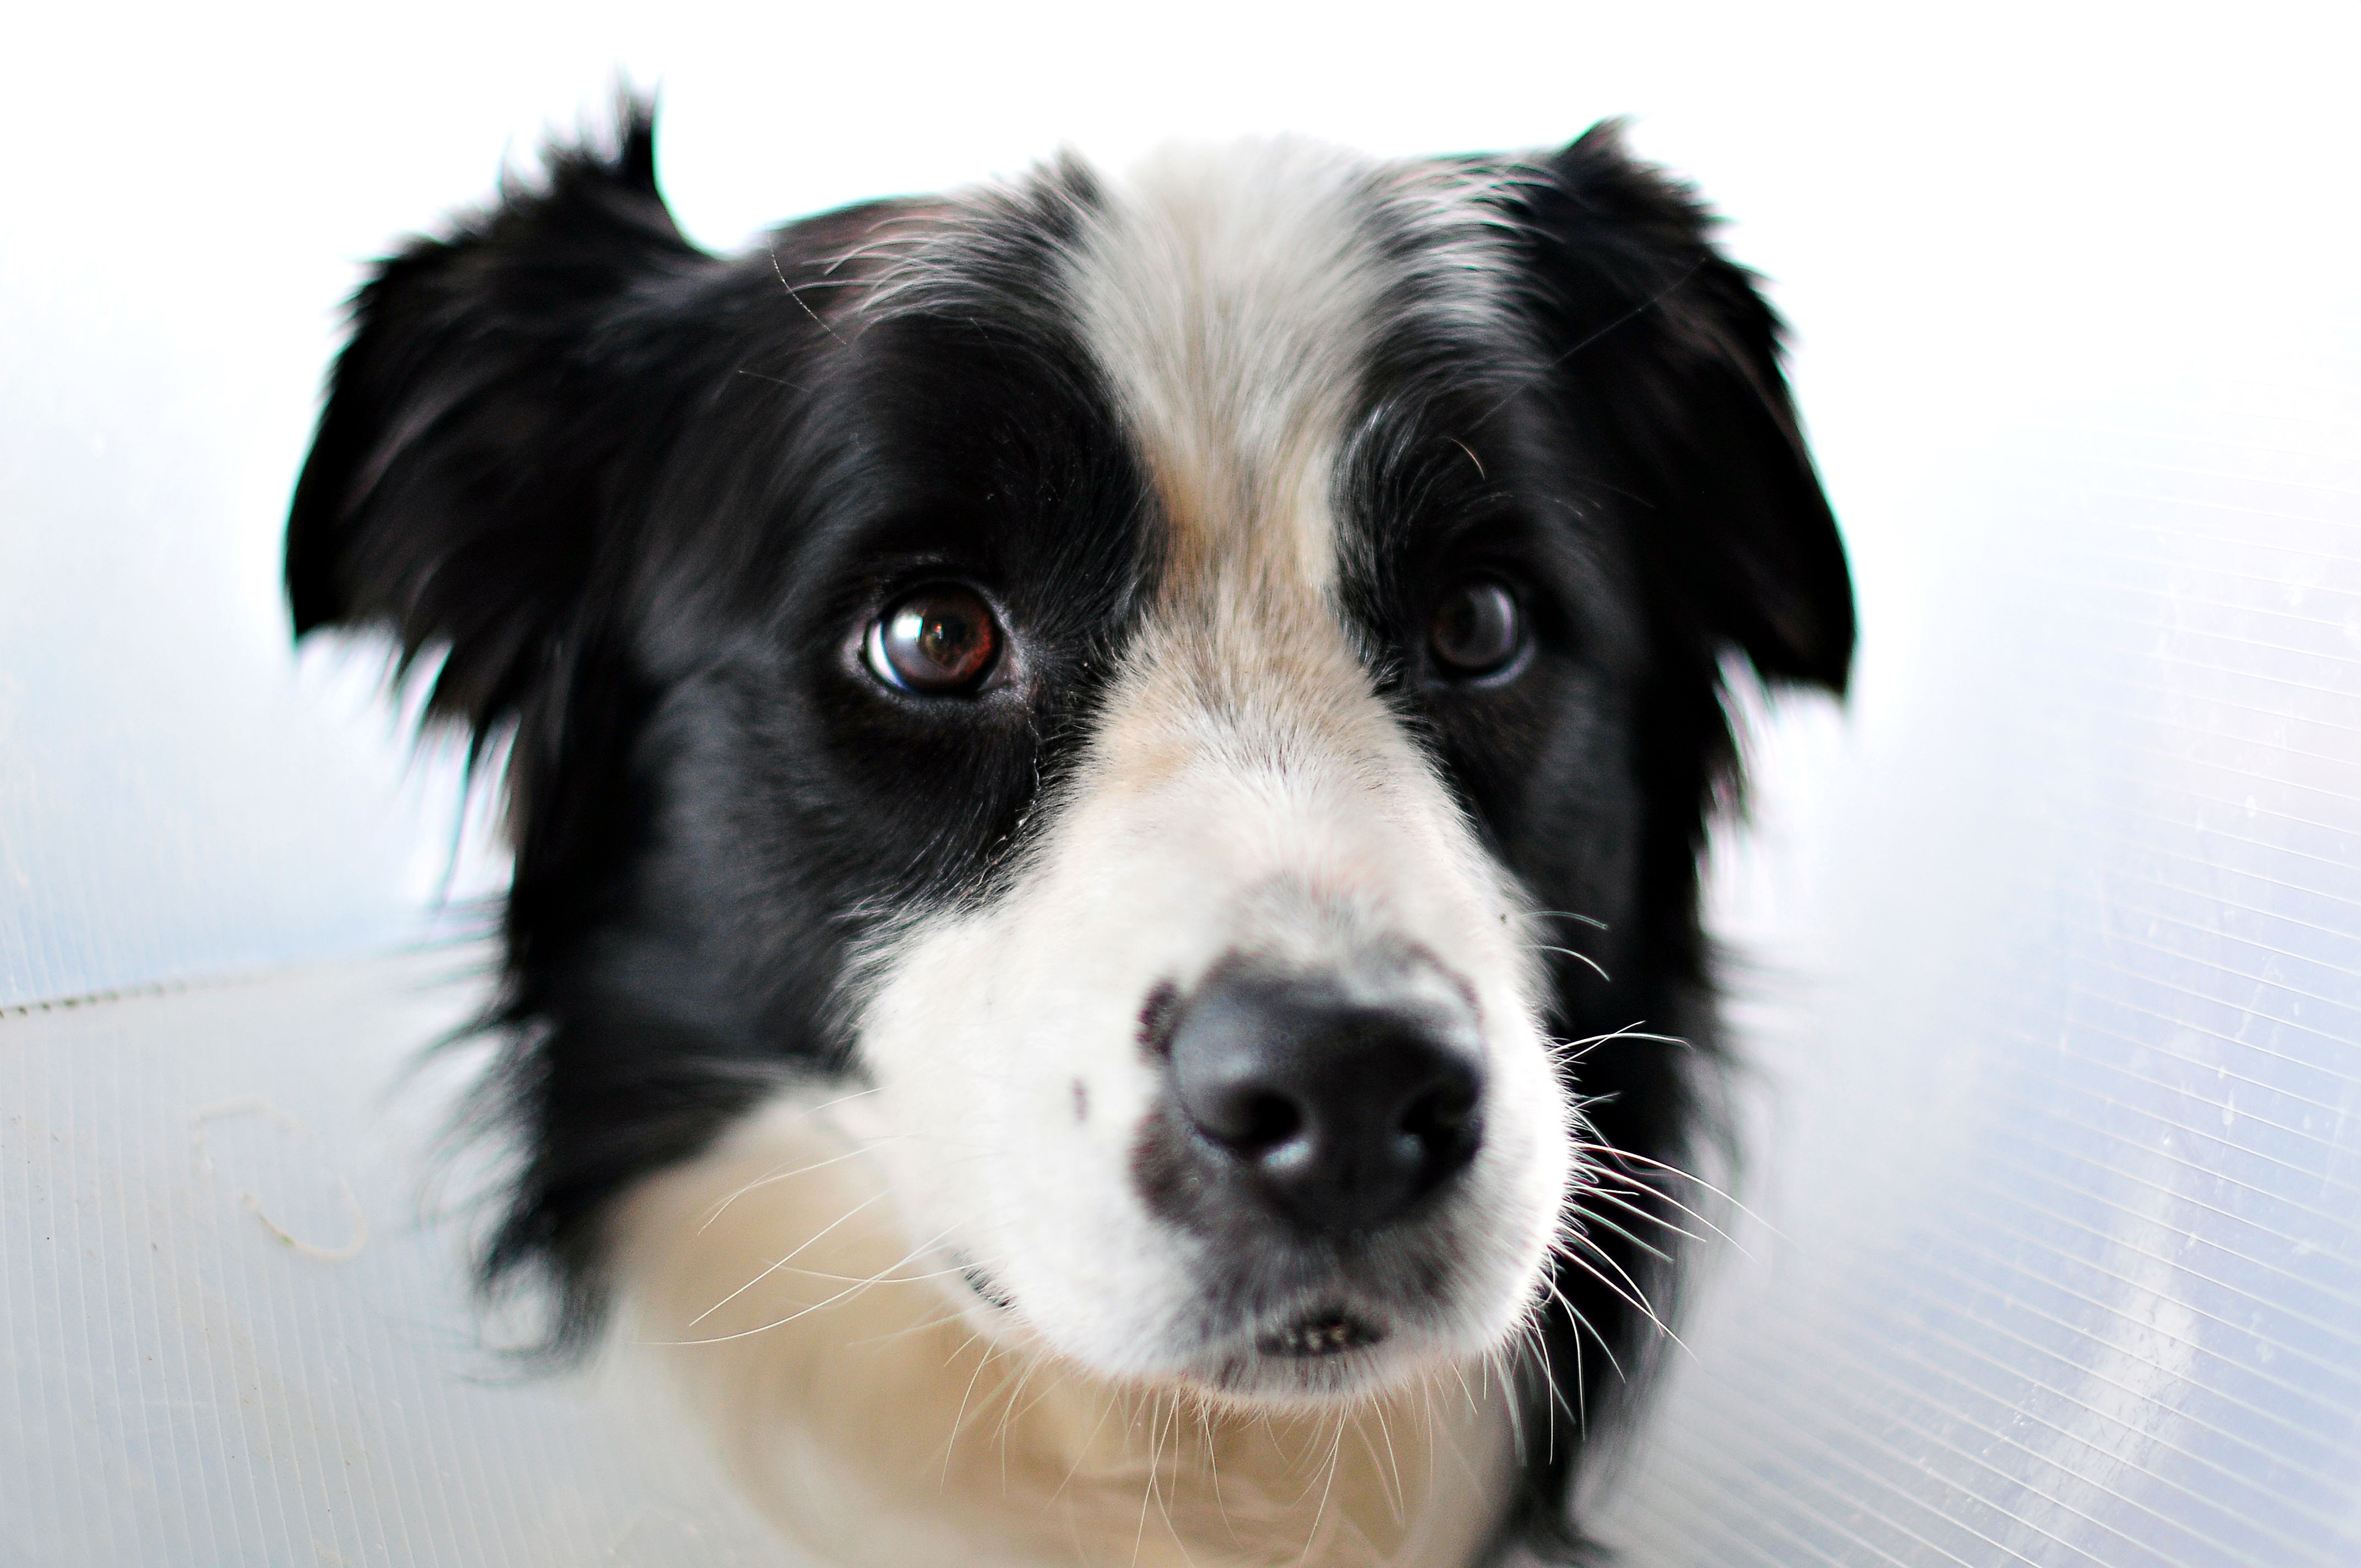 dog therapy register dogs pet tv service animal pets registration licenses irish names valentine doggy close valentines photographs replays clues